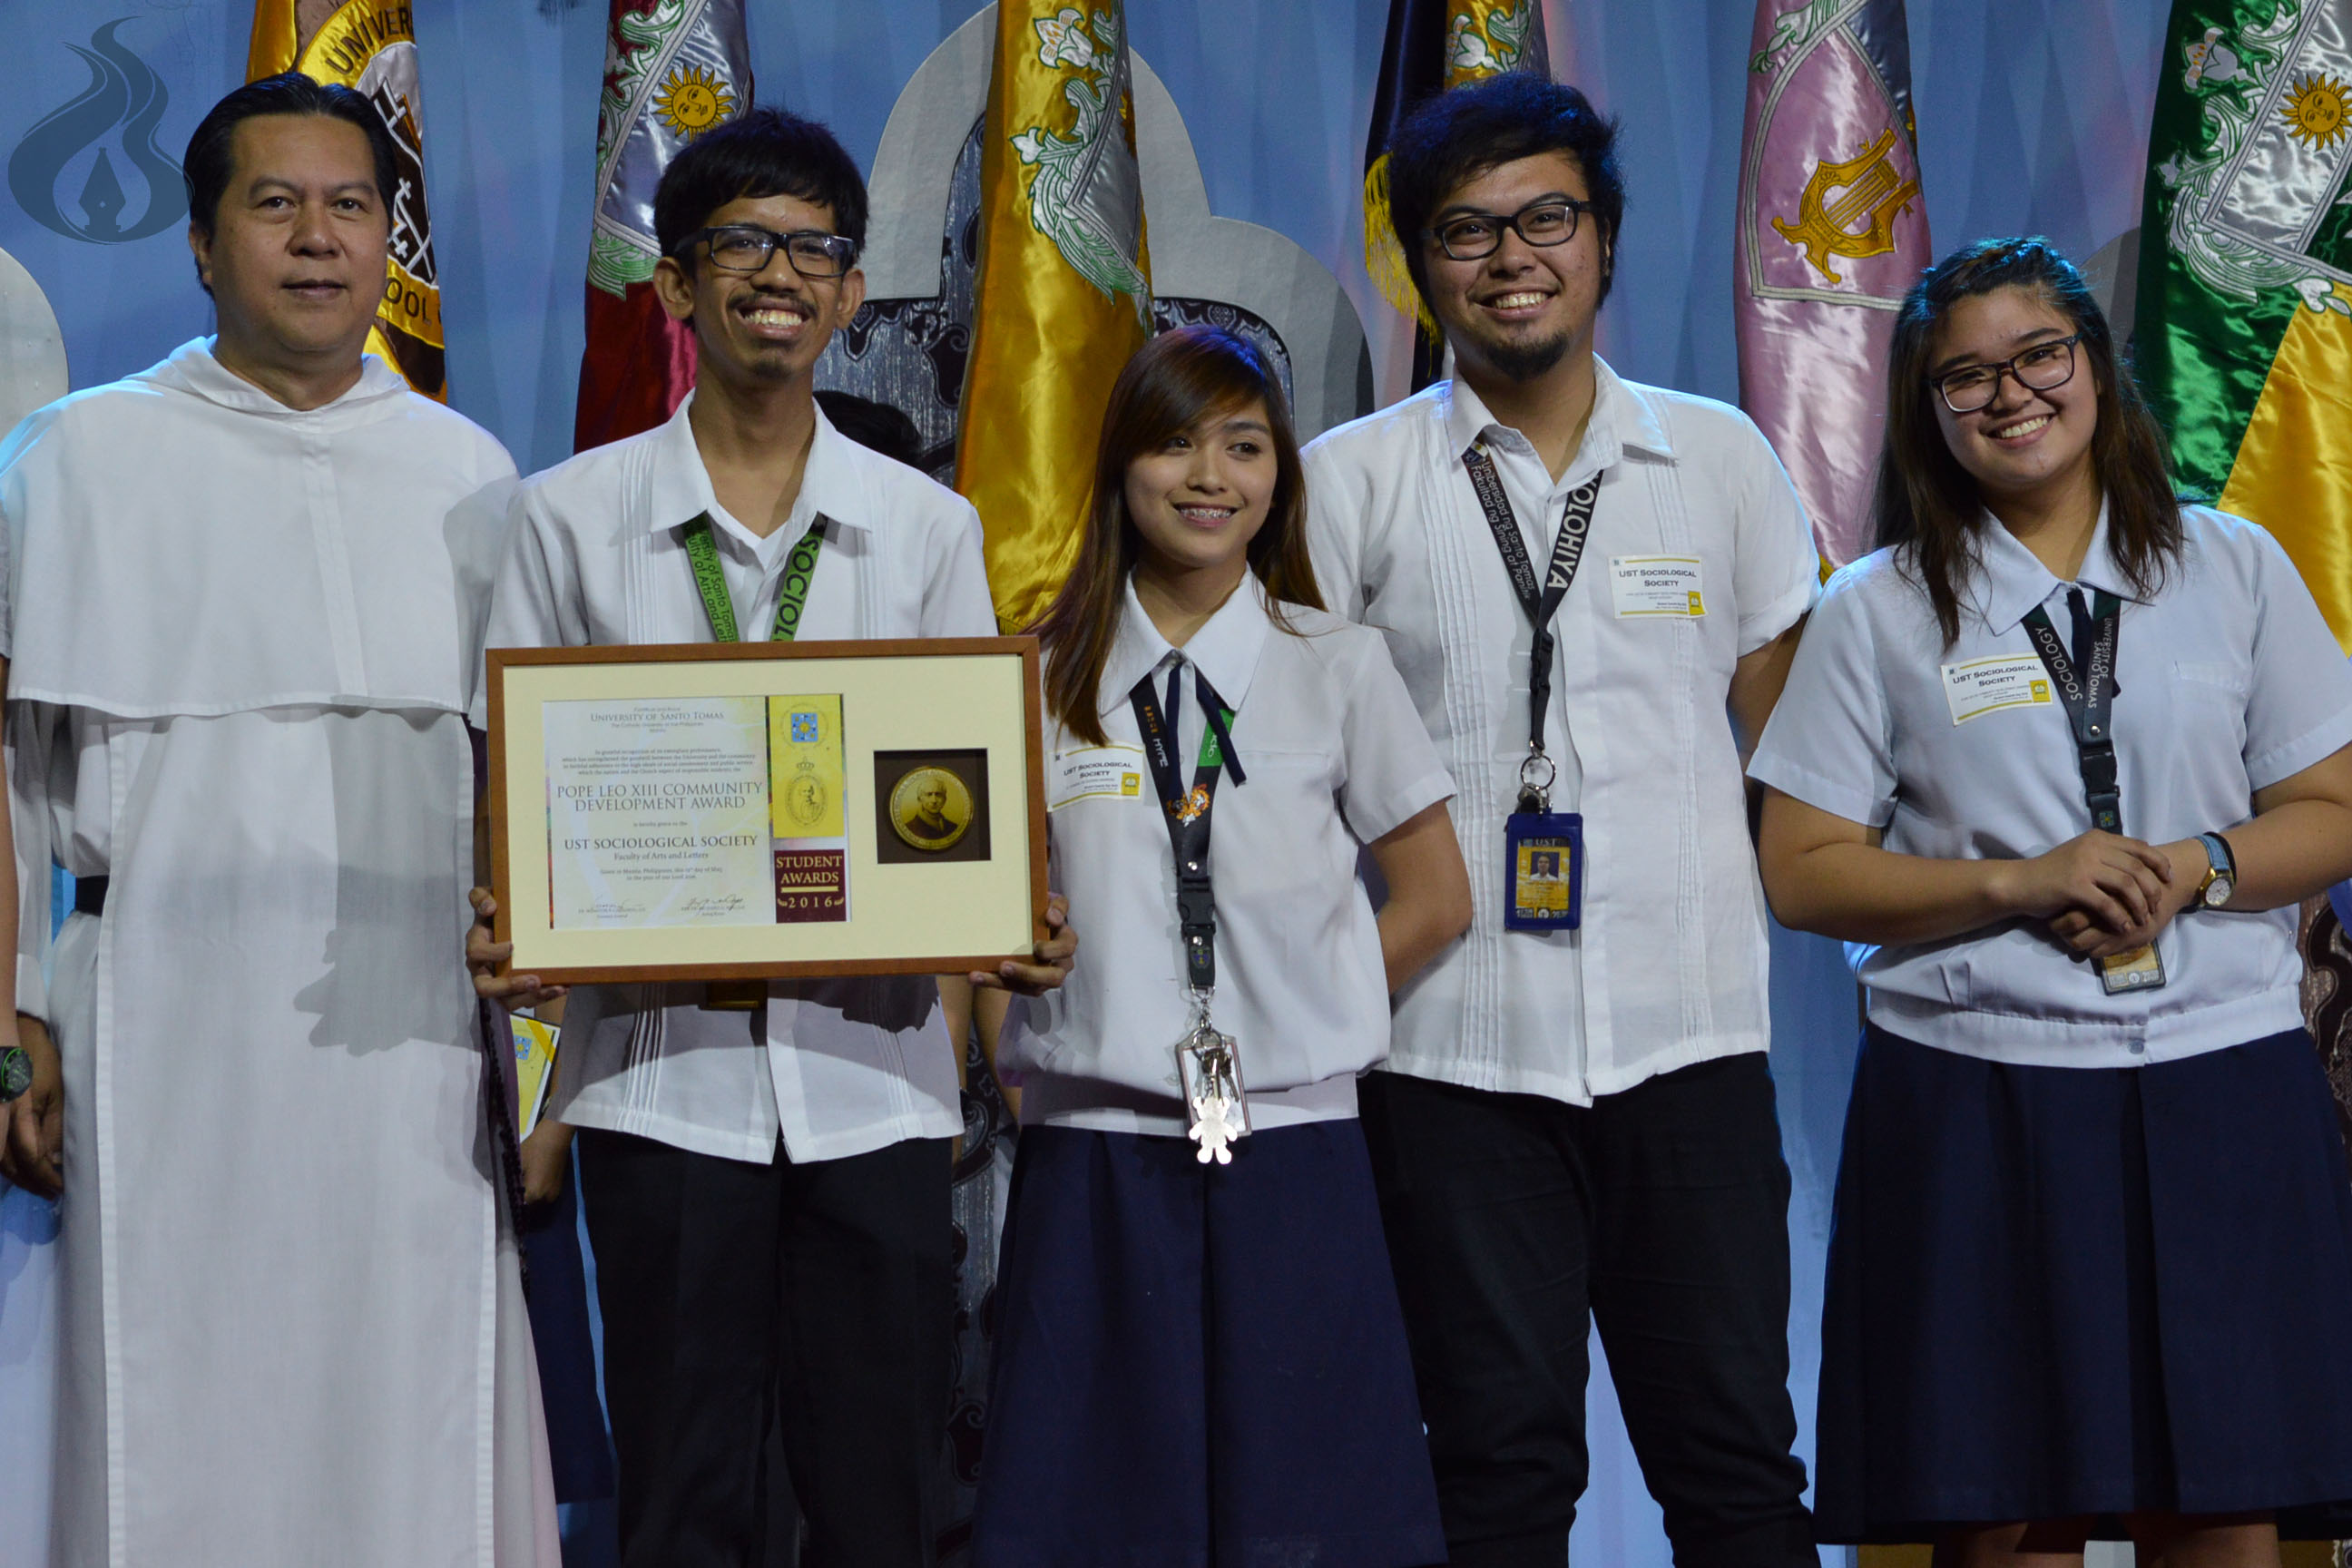 Artlet student leaders, achievers excel in Student Awards